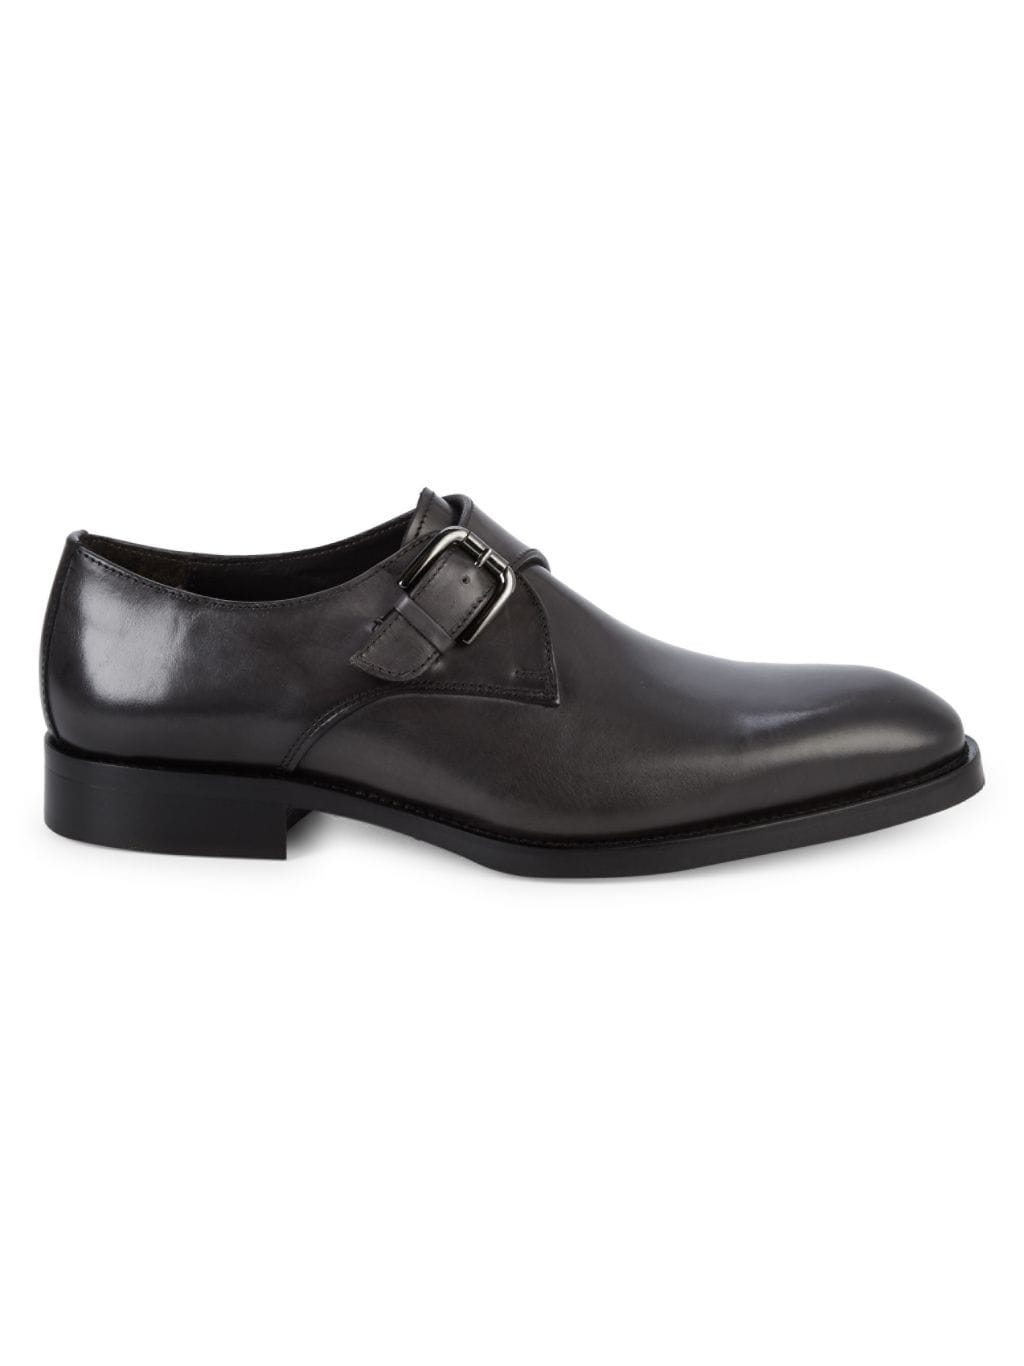 To Boot New York Woods Monk Strap Dress Shoes